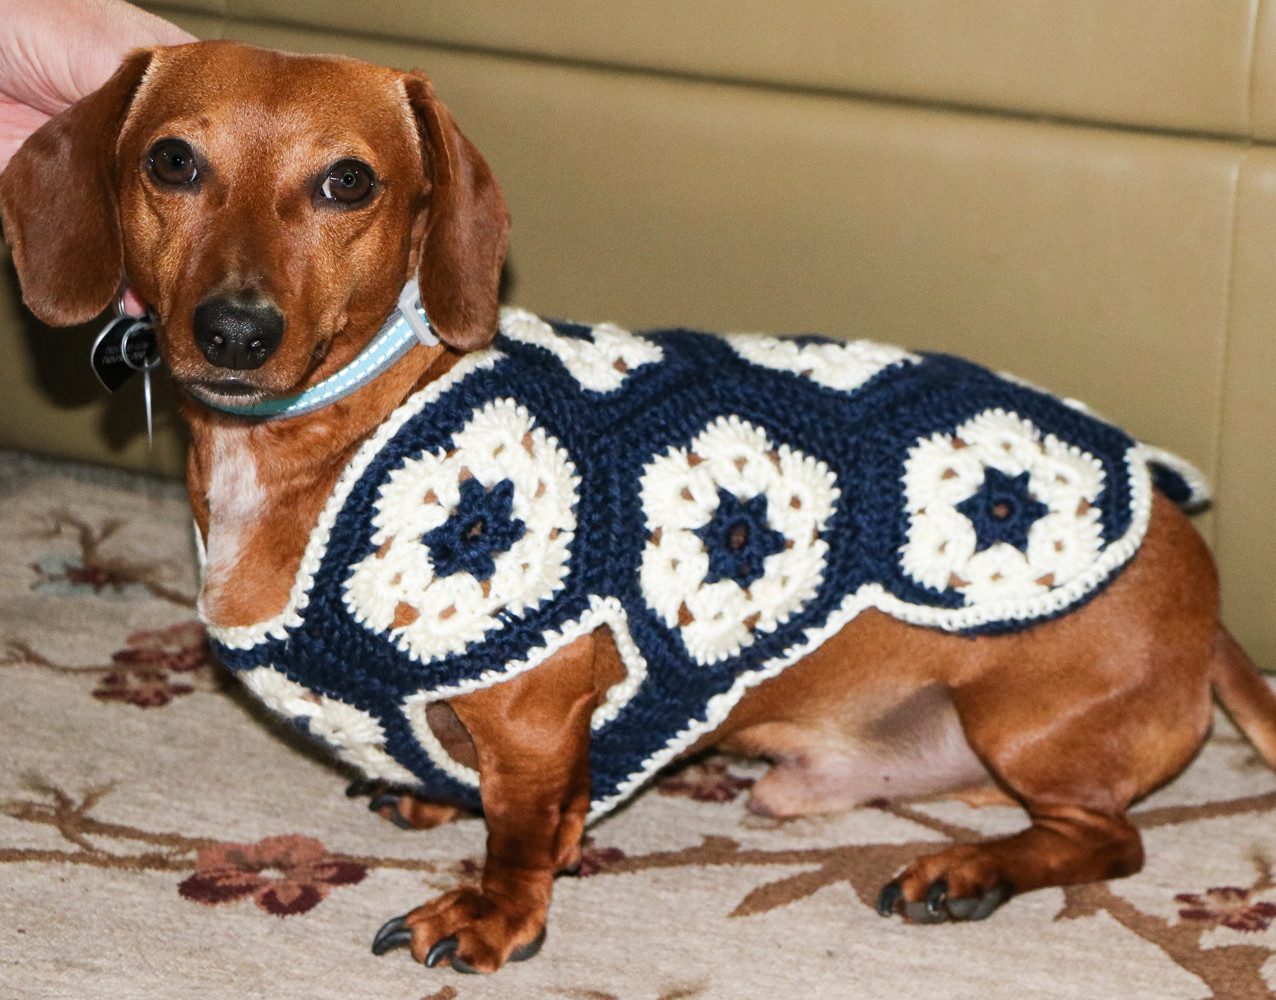 Crochet Dog Sweater Luxury African Flower Dog Sweater – Sewing My Way Through the Usa Of New 46 Photos Crochet Dog Sweater